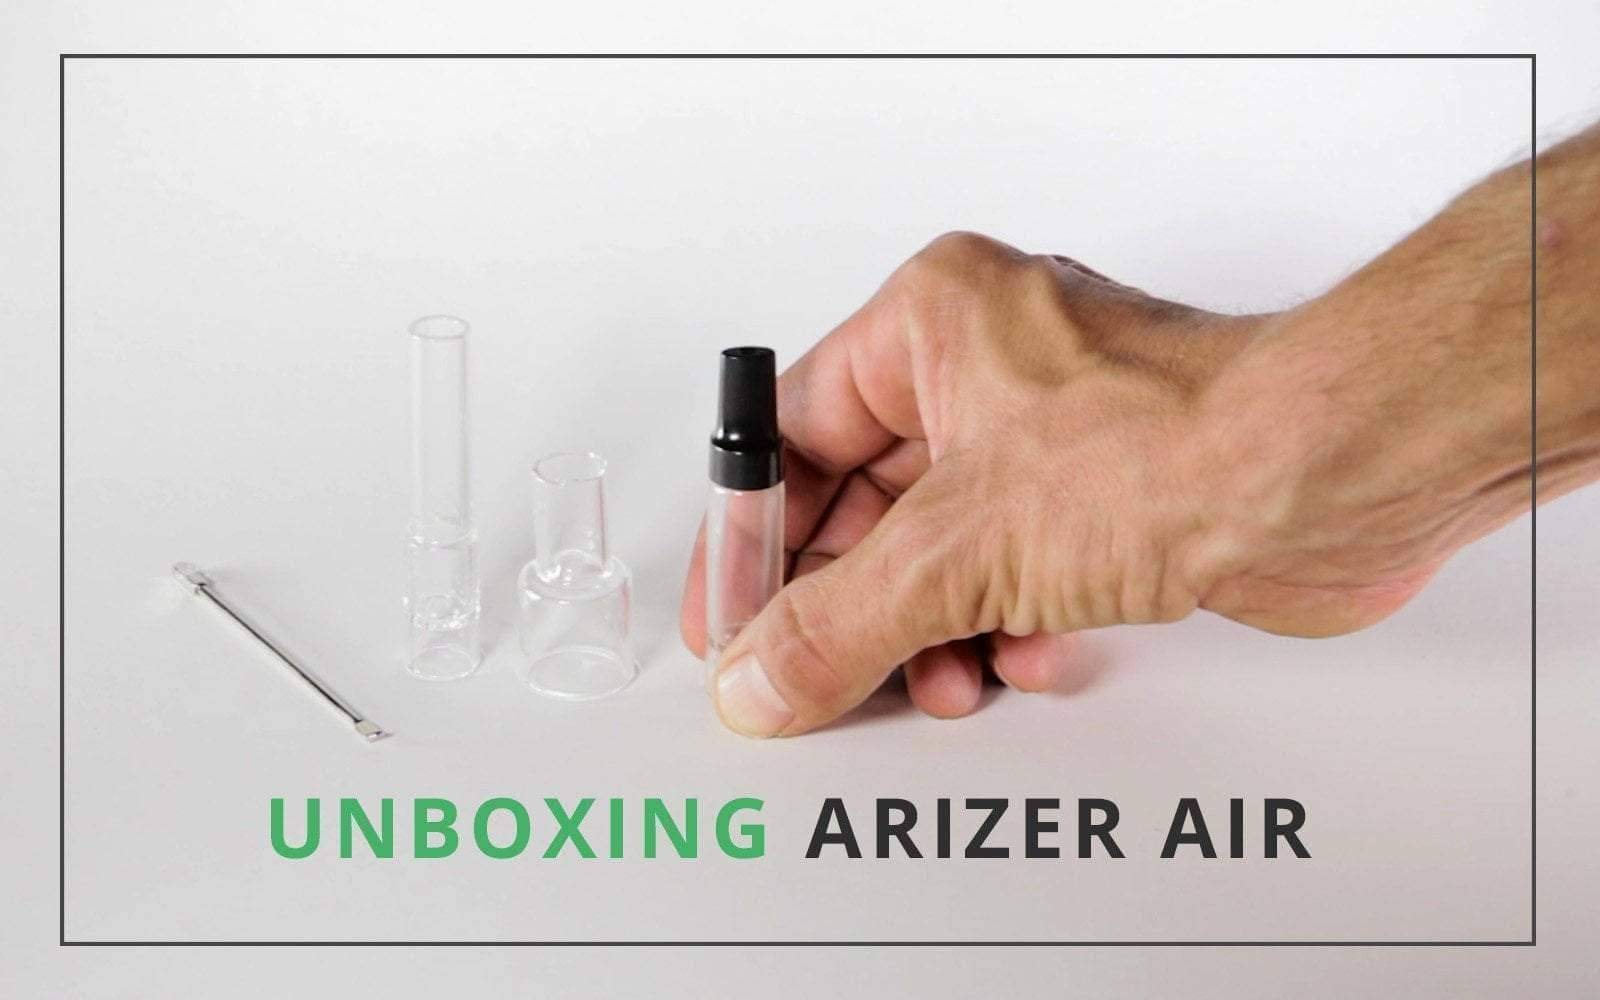 Unboxing Arizer Air